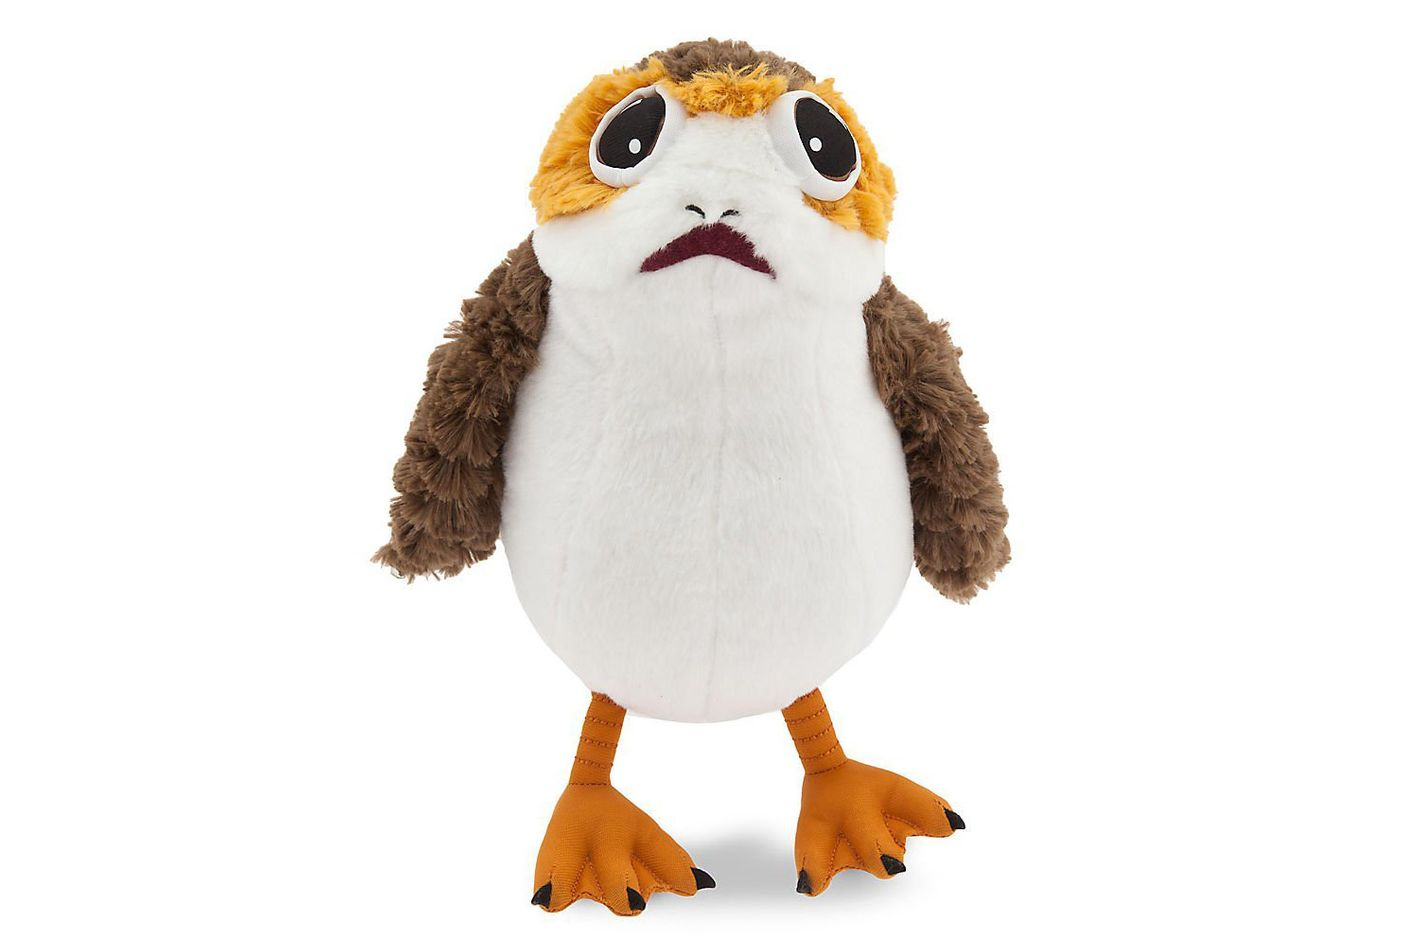 Star Wars Porgs Plush